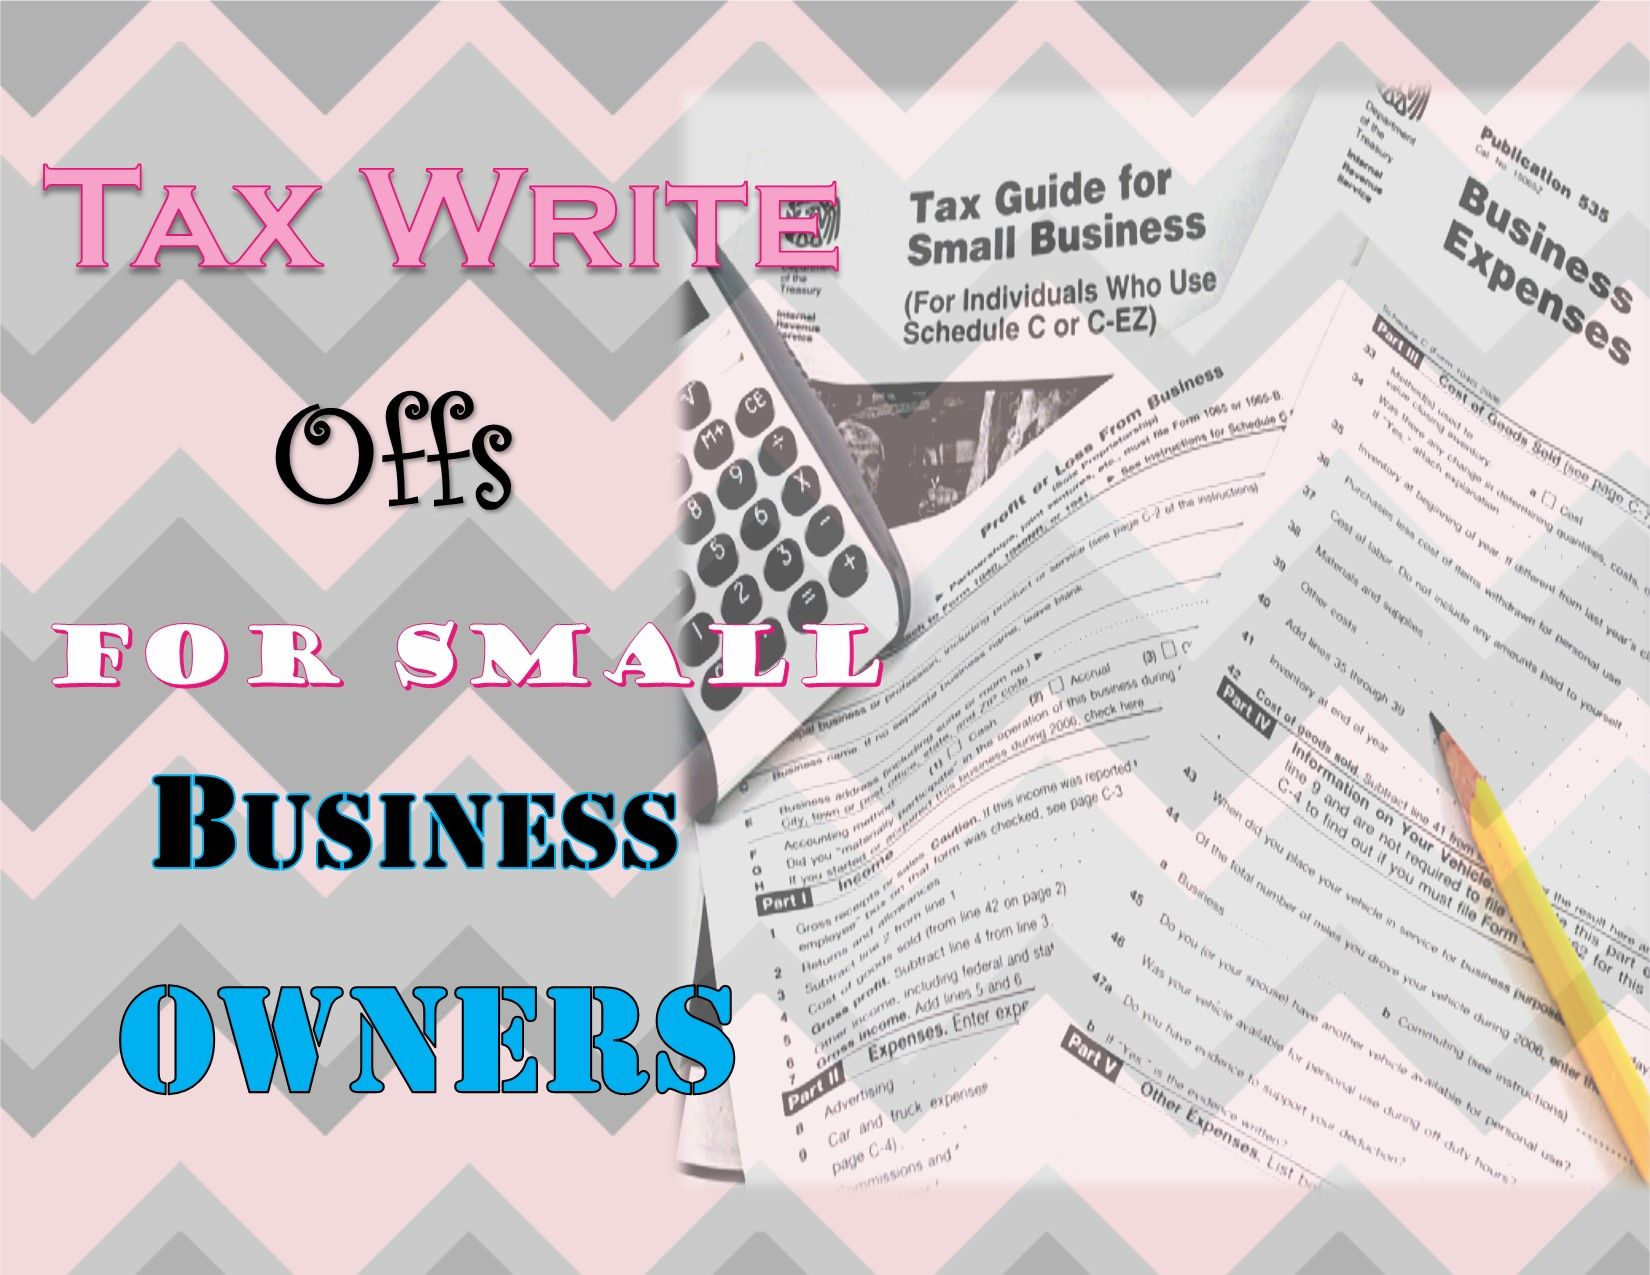 Tax Writes Offs For Small Business Owners | Pinterest | Business ...